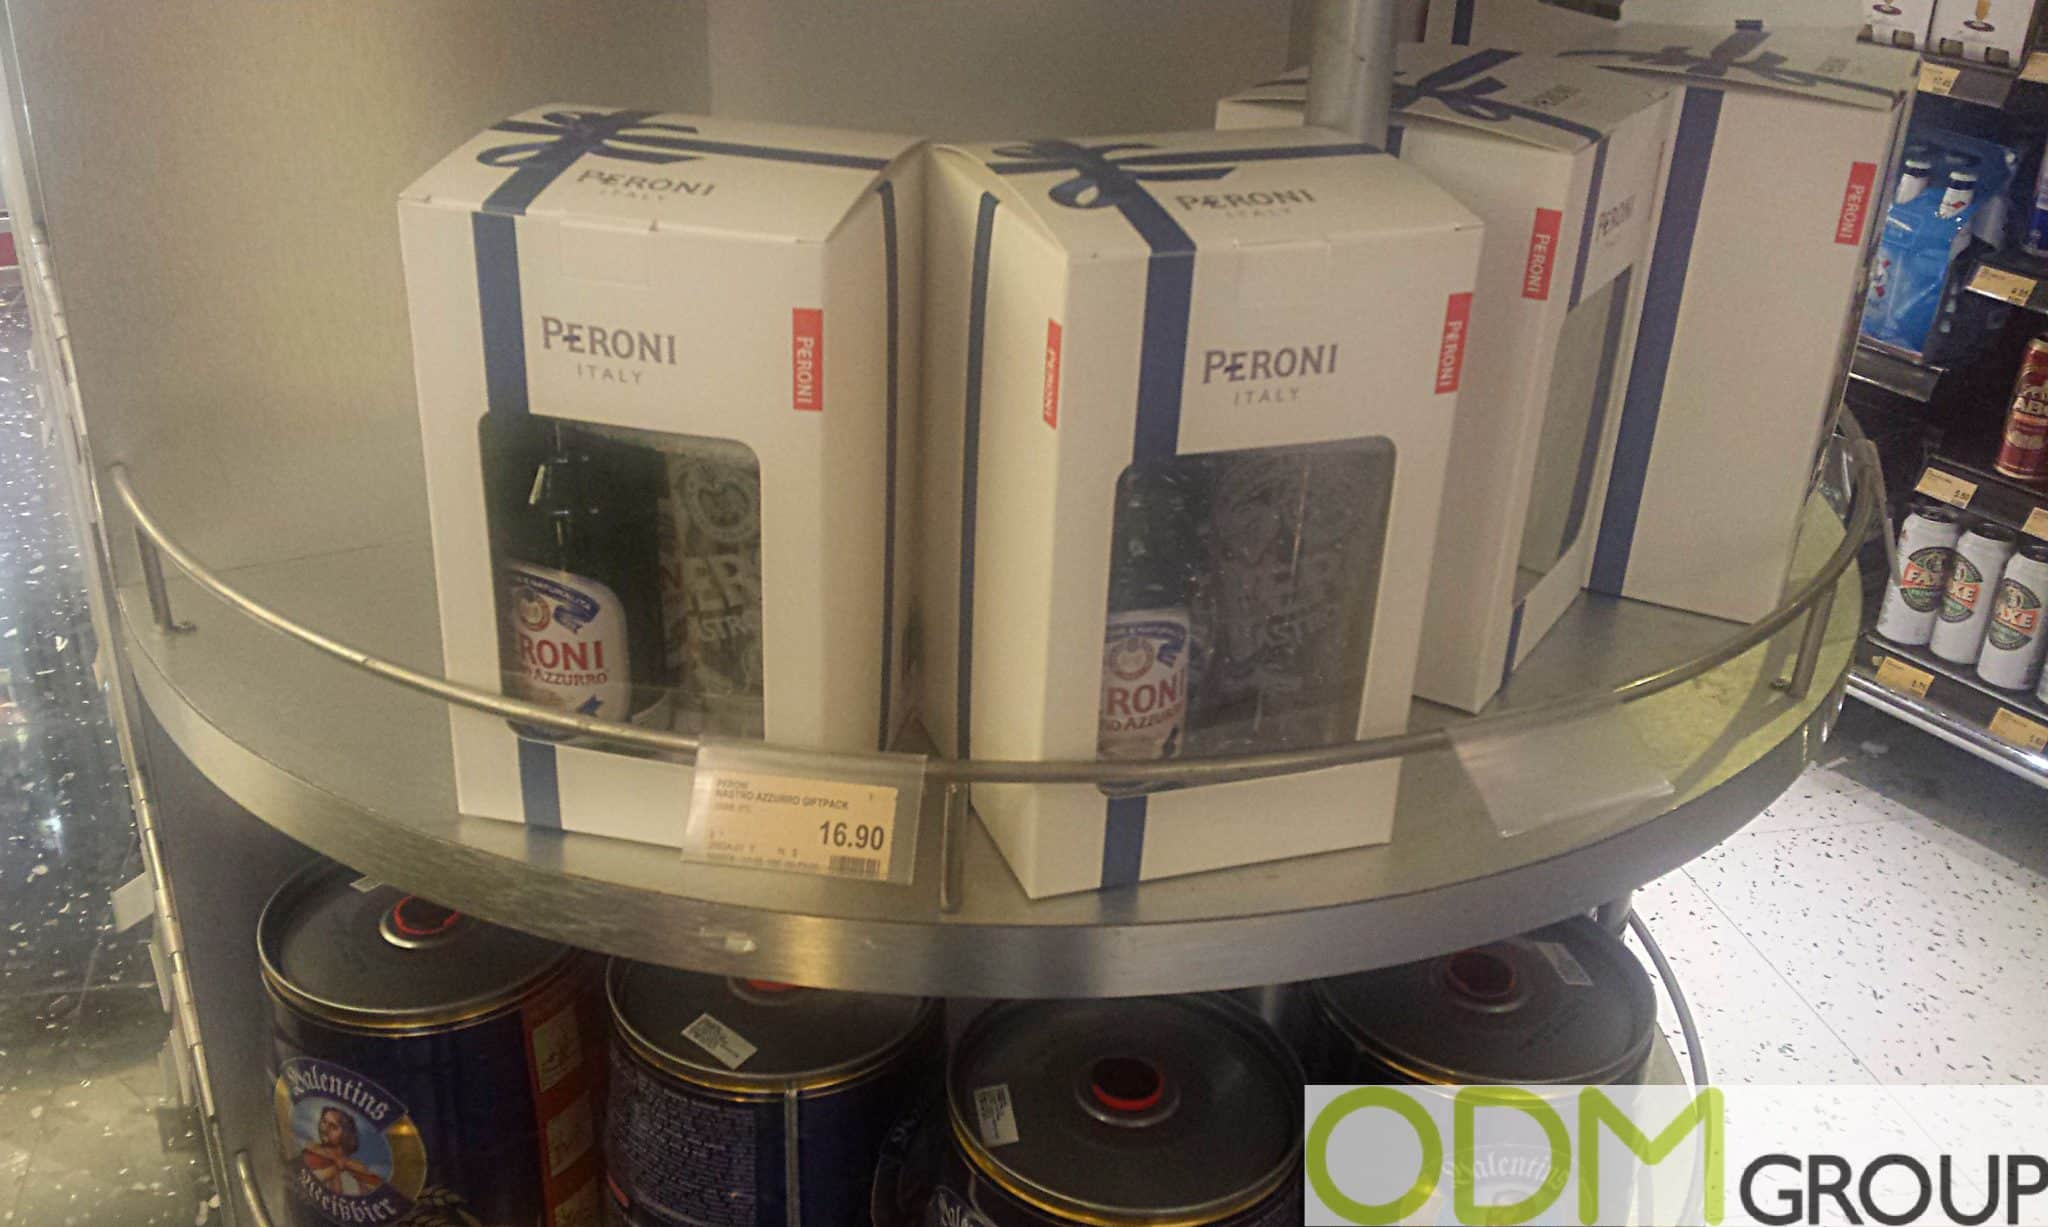 Peroni In-pack Promotion Offers Free Promo Glass